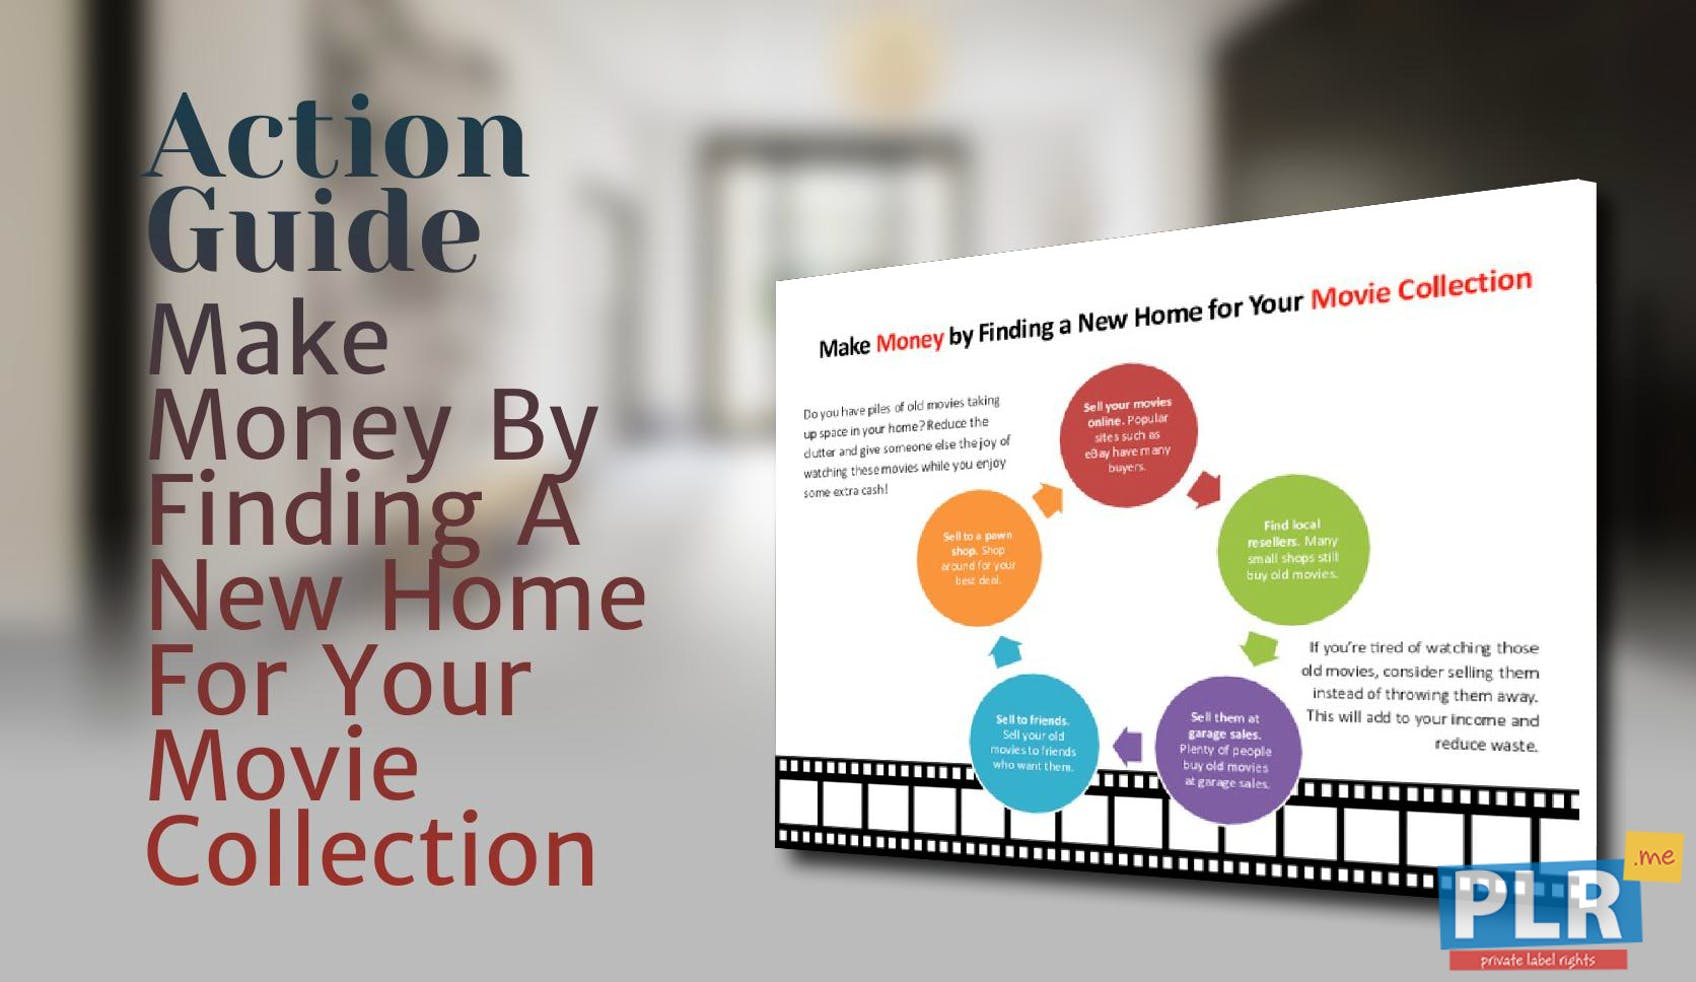 Make Money By Finding A New Home For Your Movie Collection